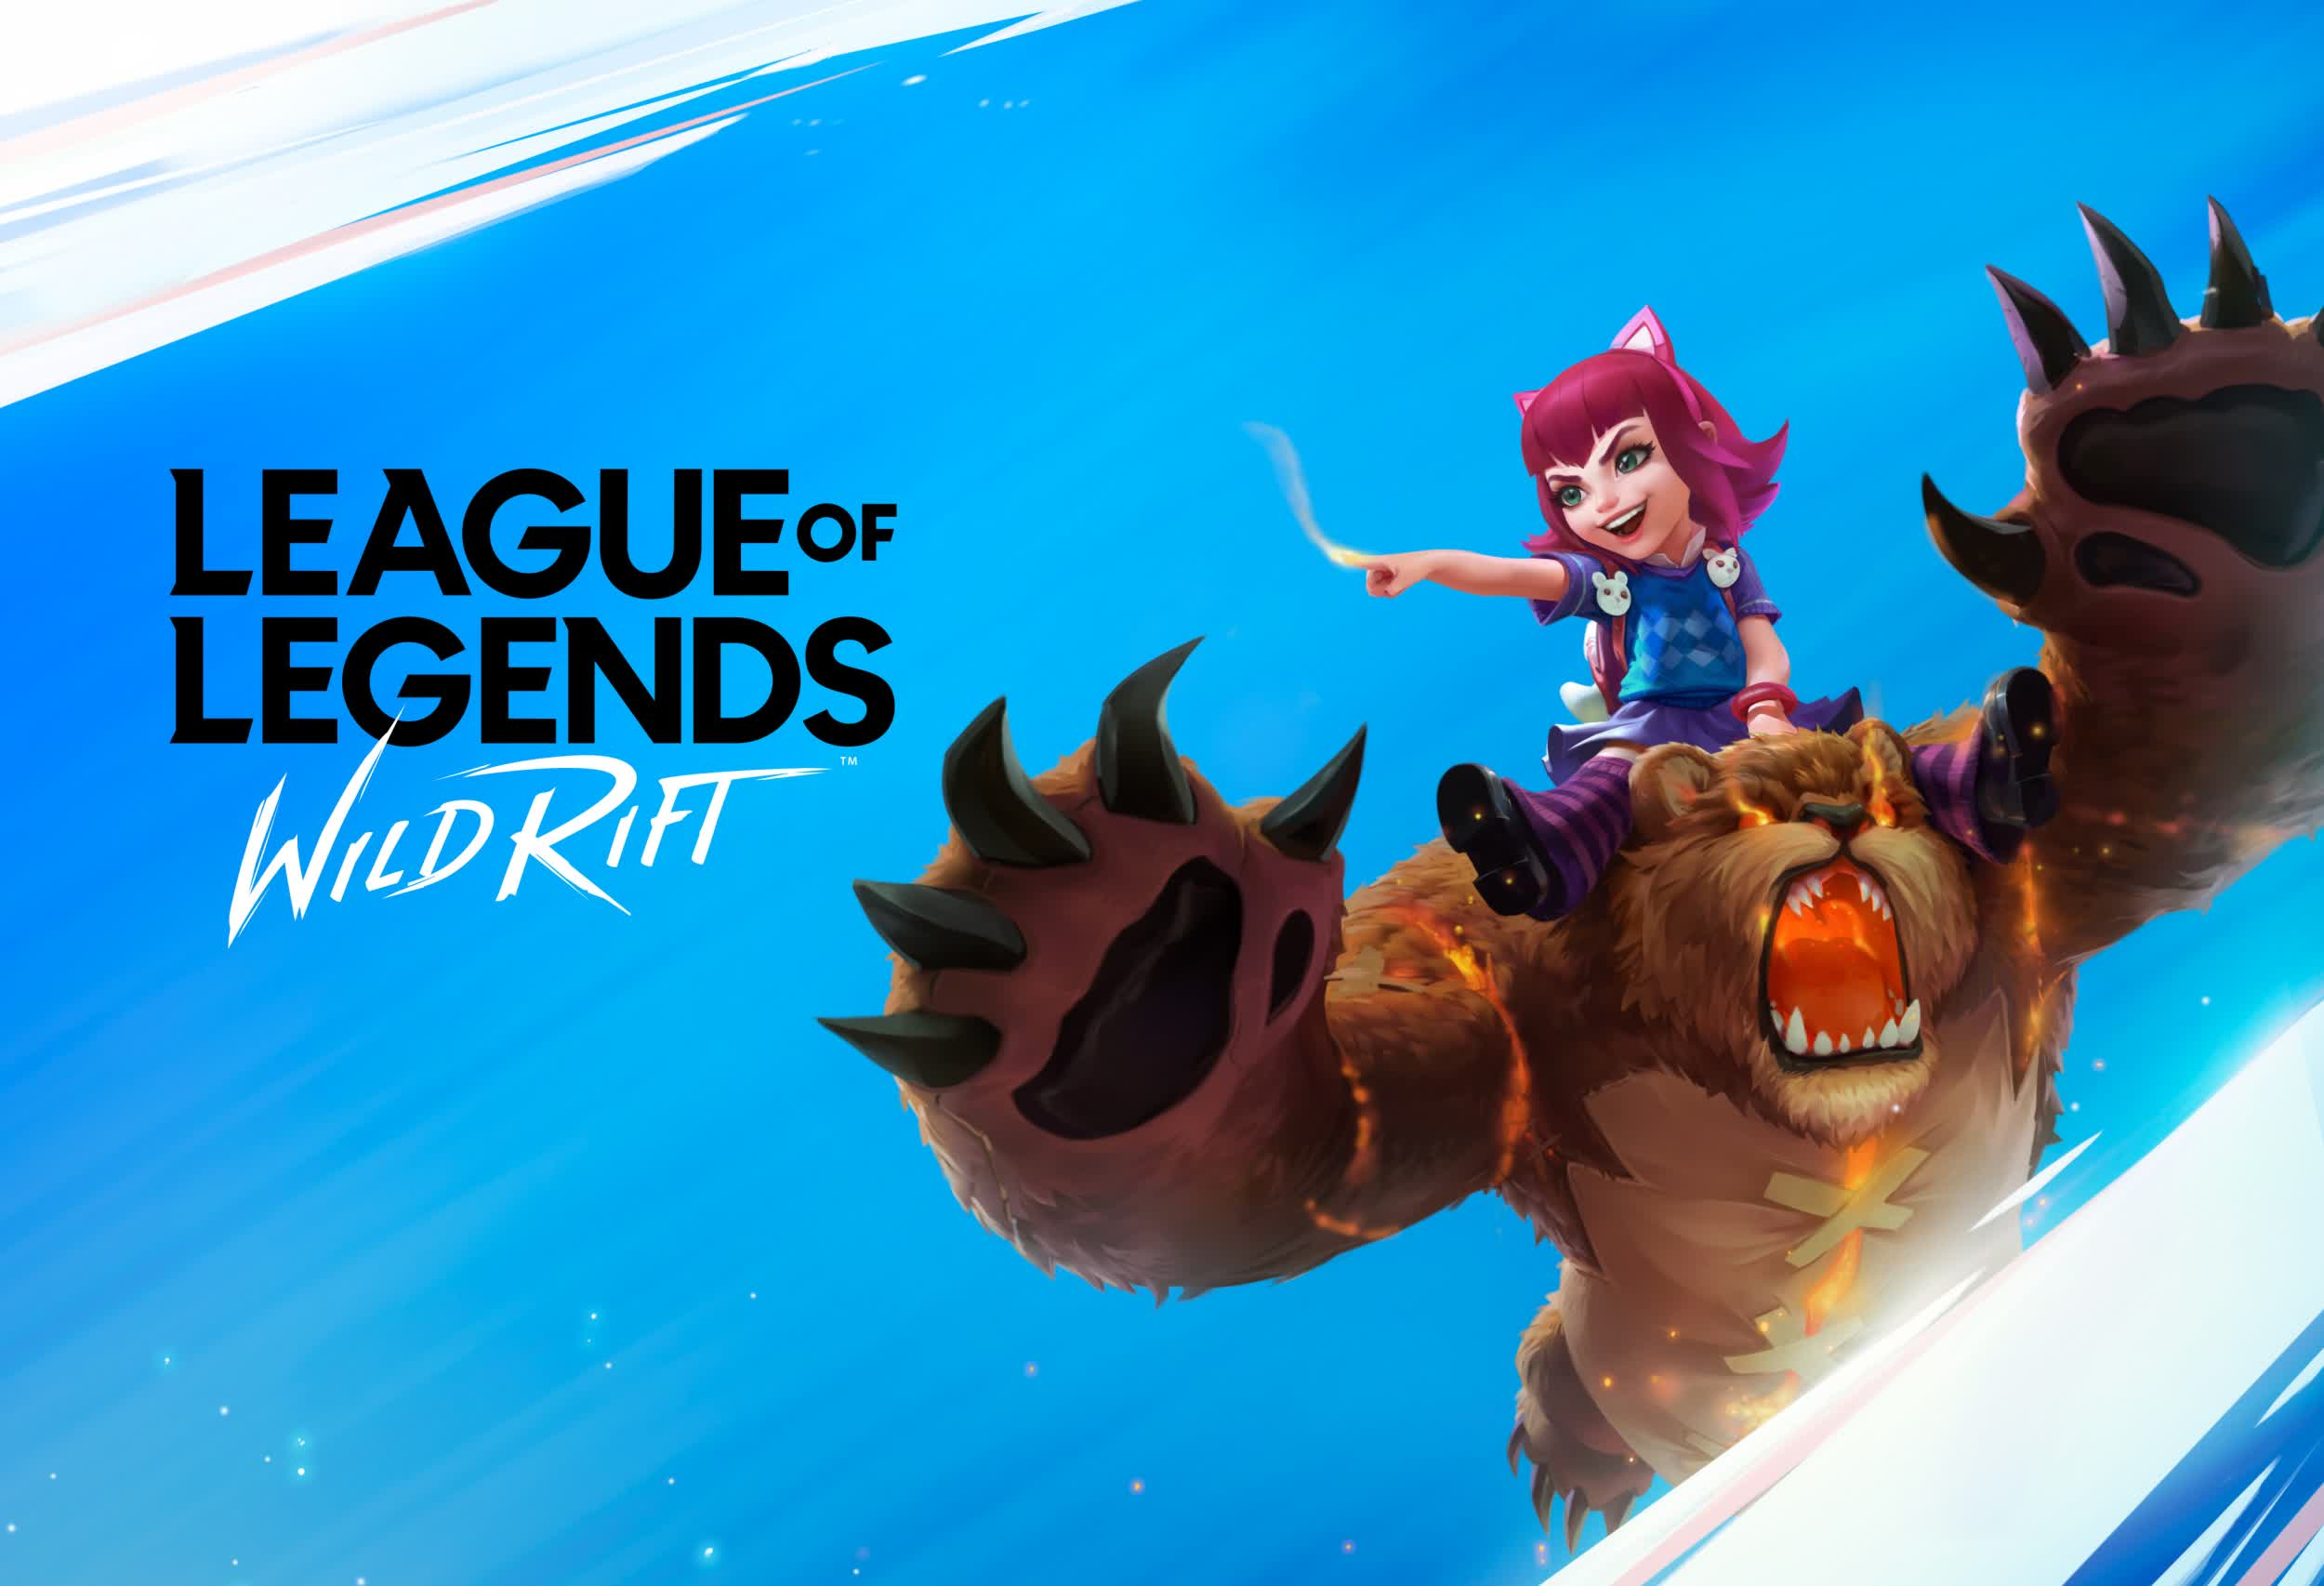 League of Legends: Wild Rift beta opens in the Americas this month